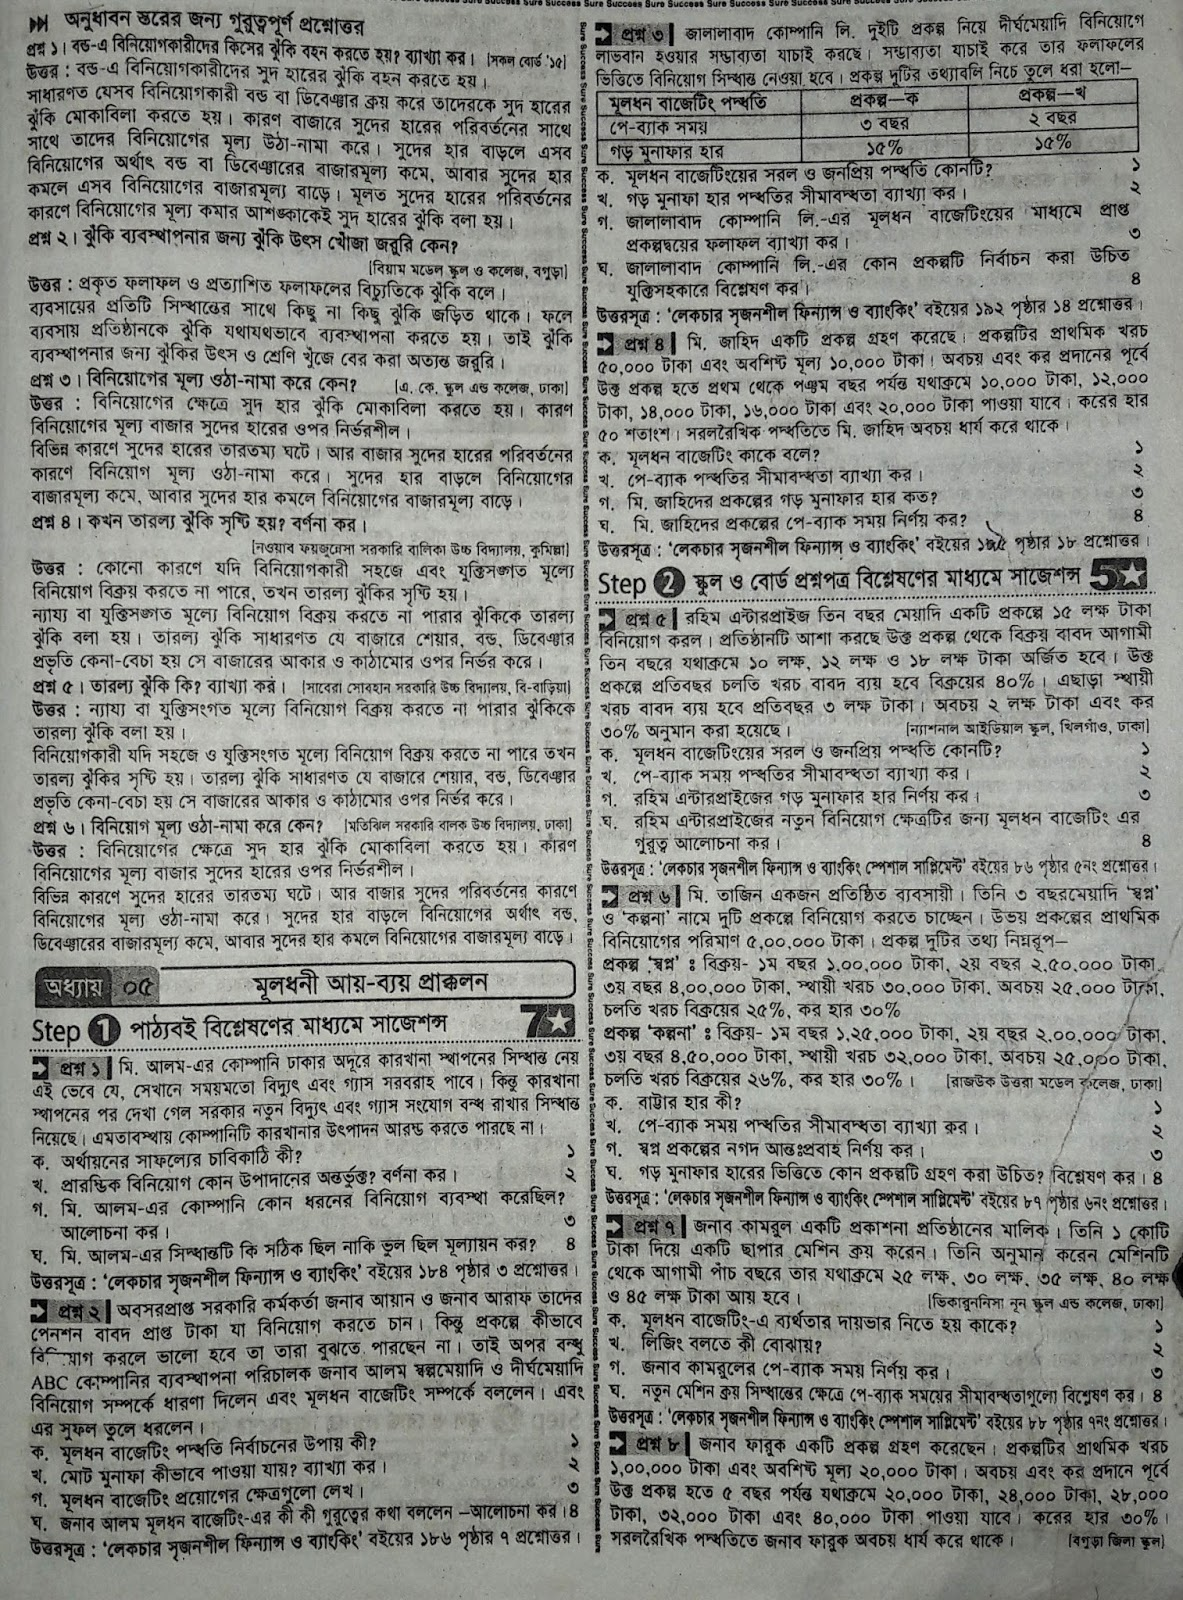 ssc Finance and Banking suggestion, question paper, model question, mcq question, question pattern, syllabus for dhaka board, all boards